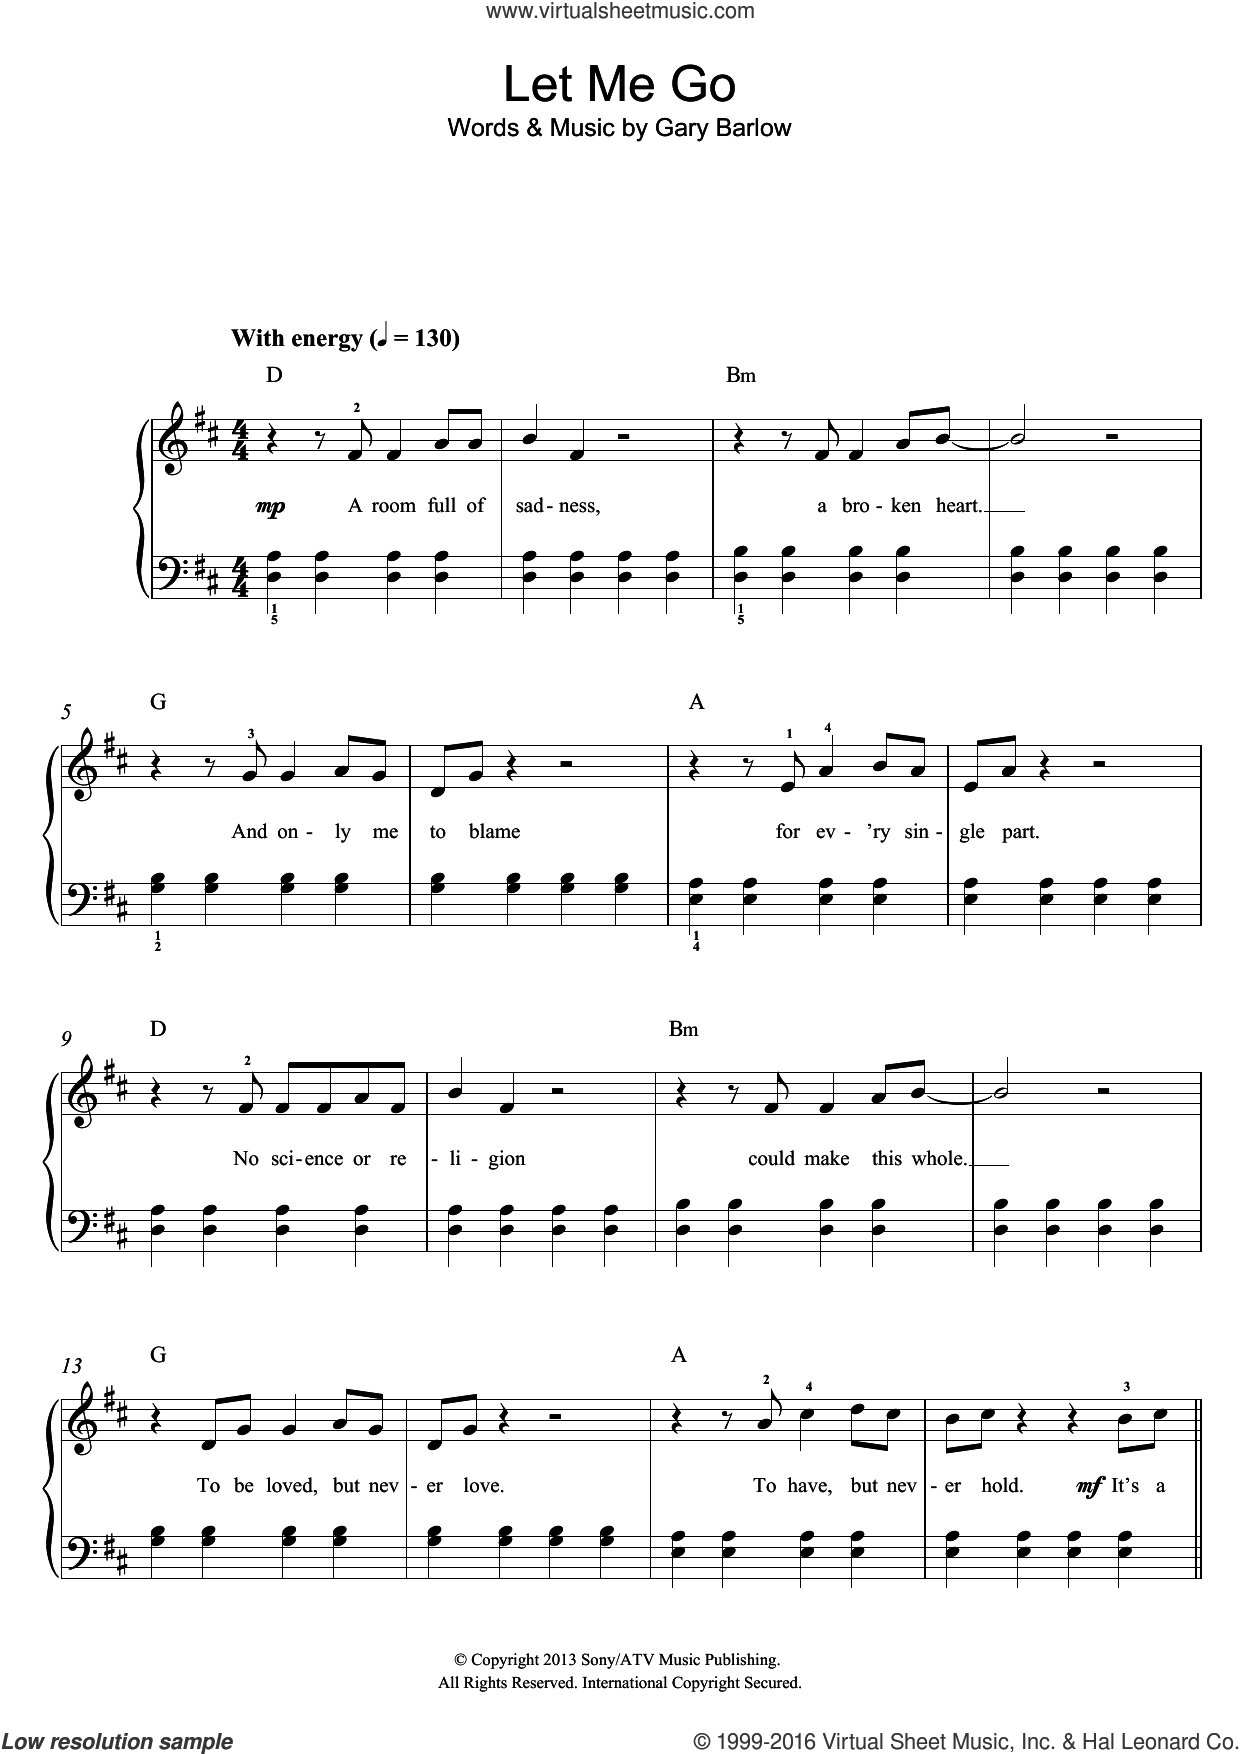 Let Me Go sheet music for piano solo by Gary Barlow. Score Image Preview.